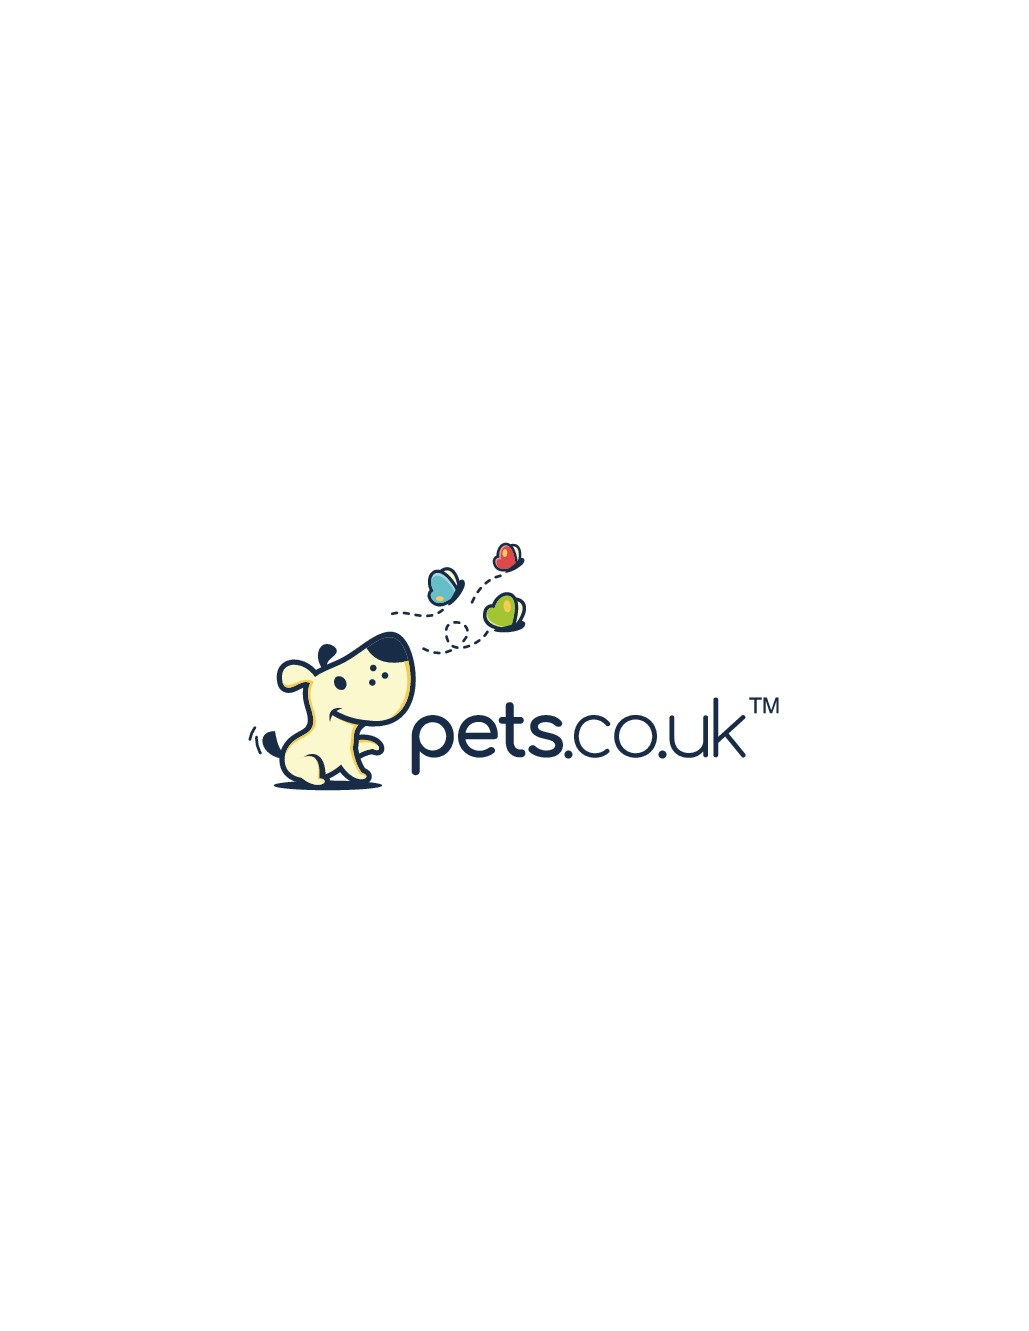 pets.co.uk needs a lively, vibrant website logo